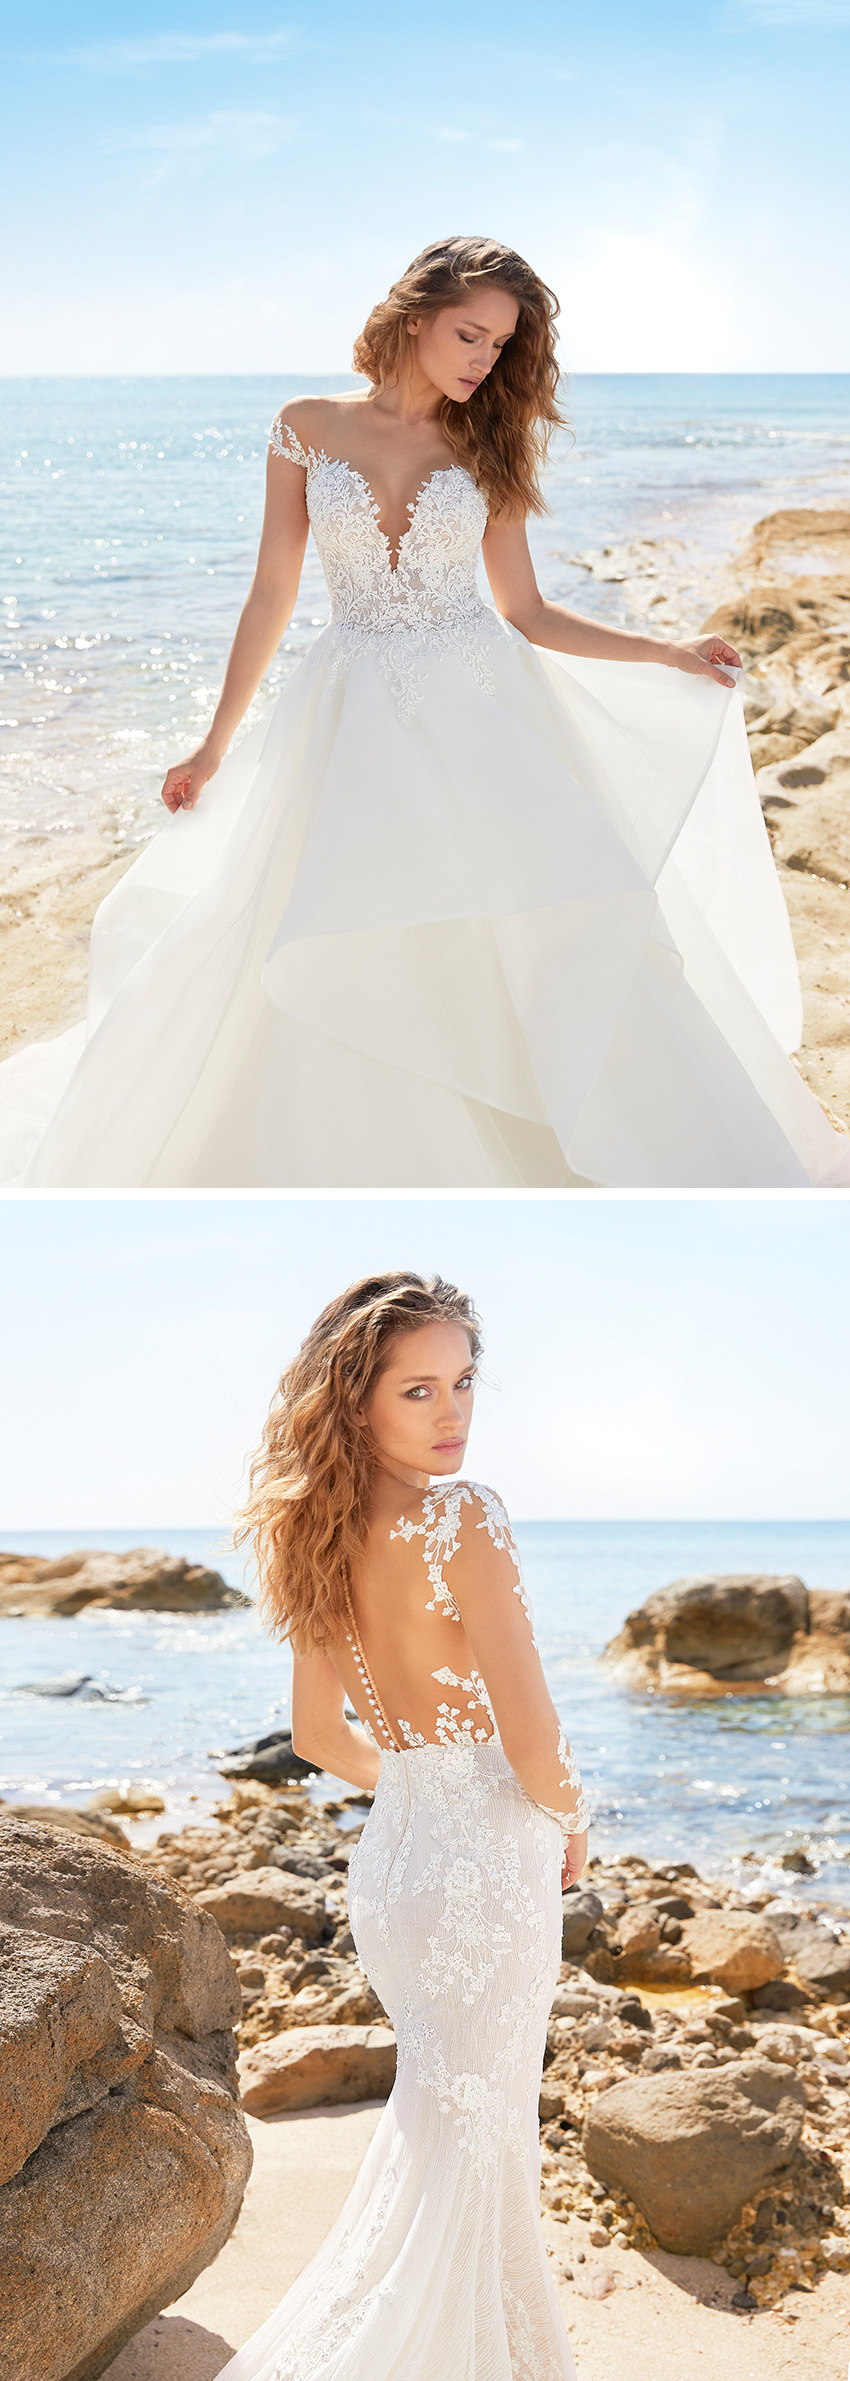 Ines by Ines Di Santo Spring 2021 bridal collection shot in the beach featured in Perfect Wedding Magazine